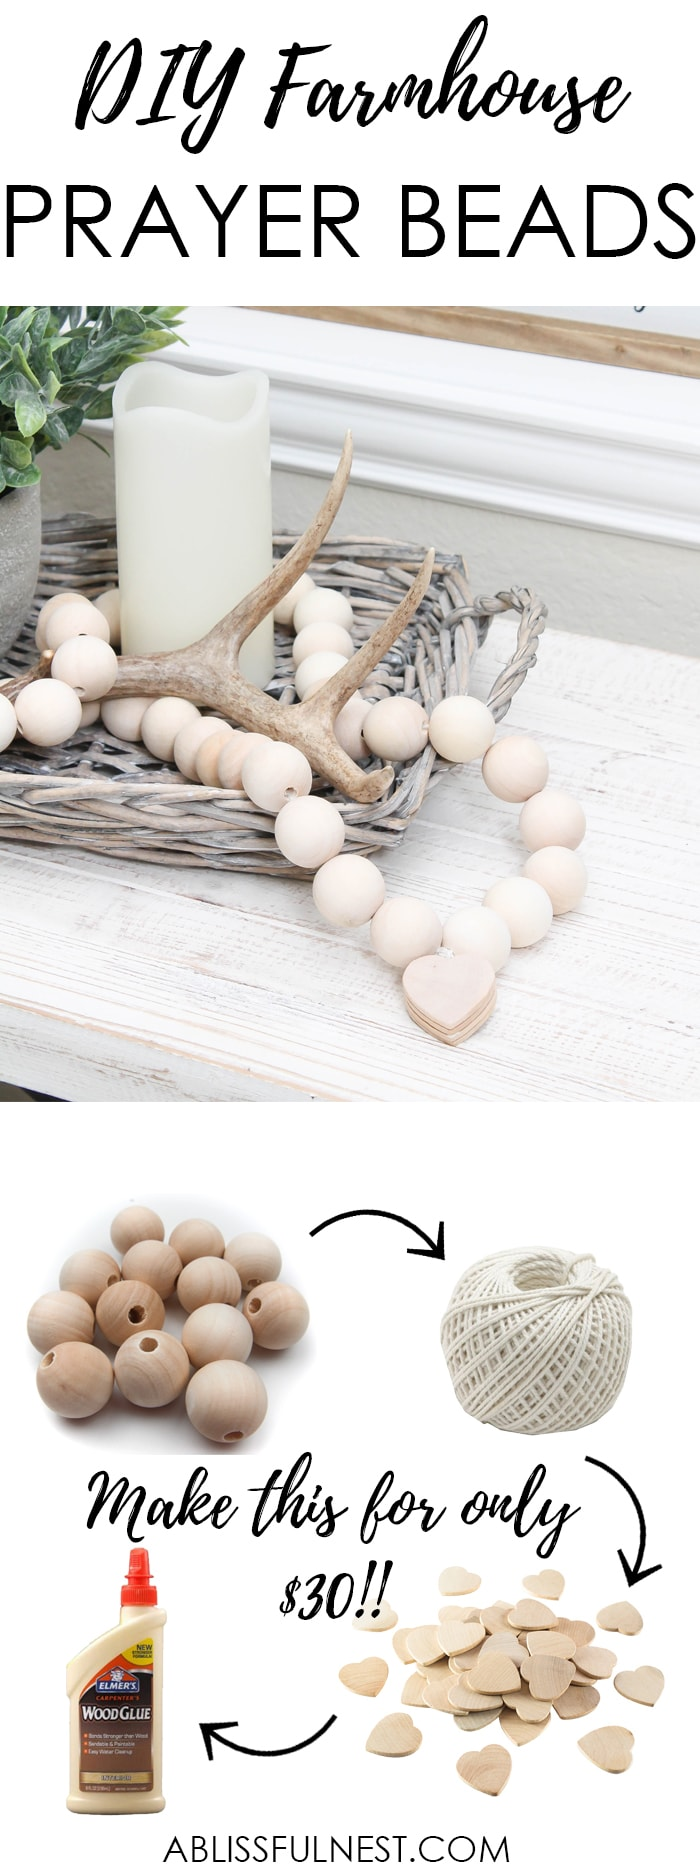 I can not believe how expensive prayer beads normally are! This DIY farmhouse wood prayer beads tutorial is so easy to make and only cost $30. What an amazing and easy DIY Farmhouse decor project! See more on https://ablissfulnest.com/ #farmhousedecor #farmhousestyle